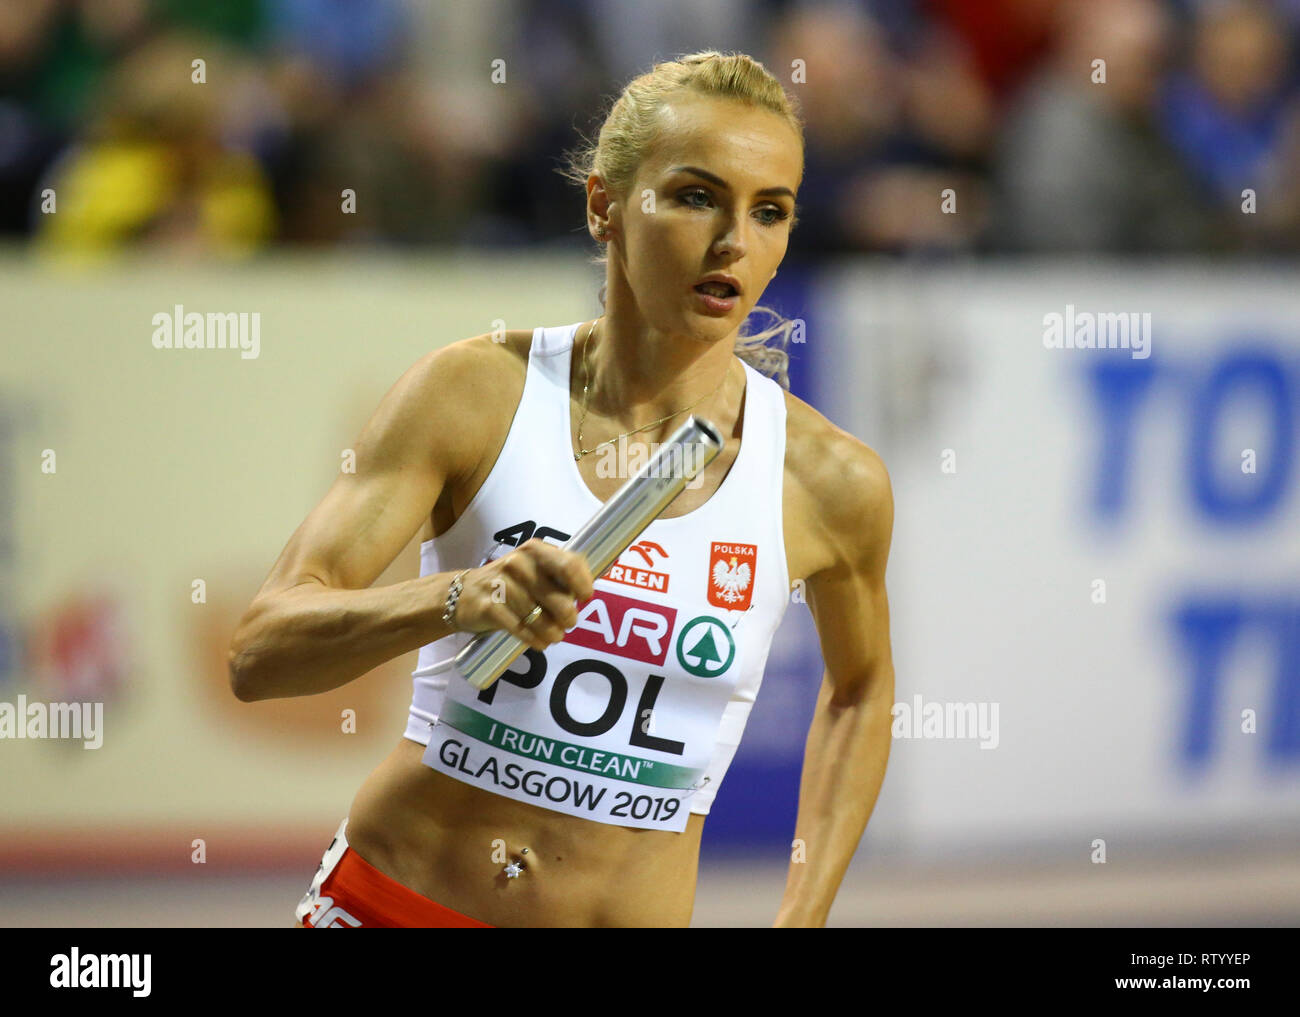 Emirates Arena, Glasgow, UK. 3rd Mar, 2019. European Athletics Indoor Championships, day 3; Justyna Swiety-Ersetic (POL) on her way to claim gold in the womens 4x400m relay Credit: Action Plus Sports/Alamy Live News - Stock Image